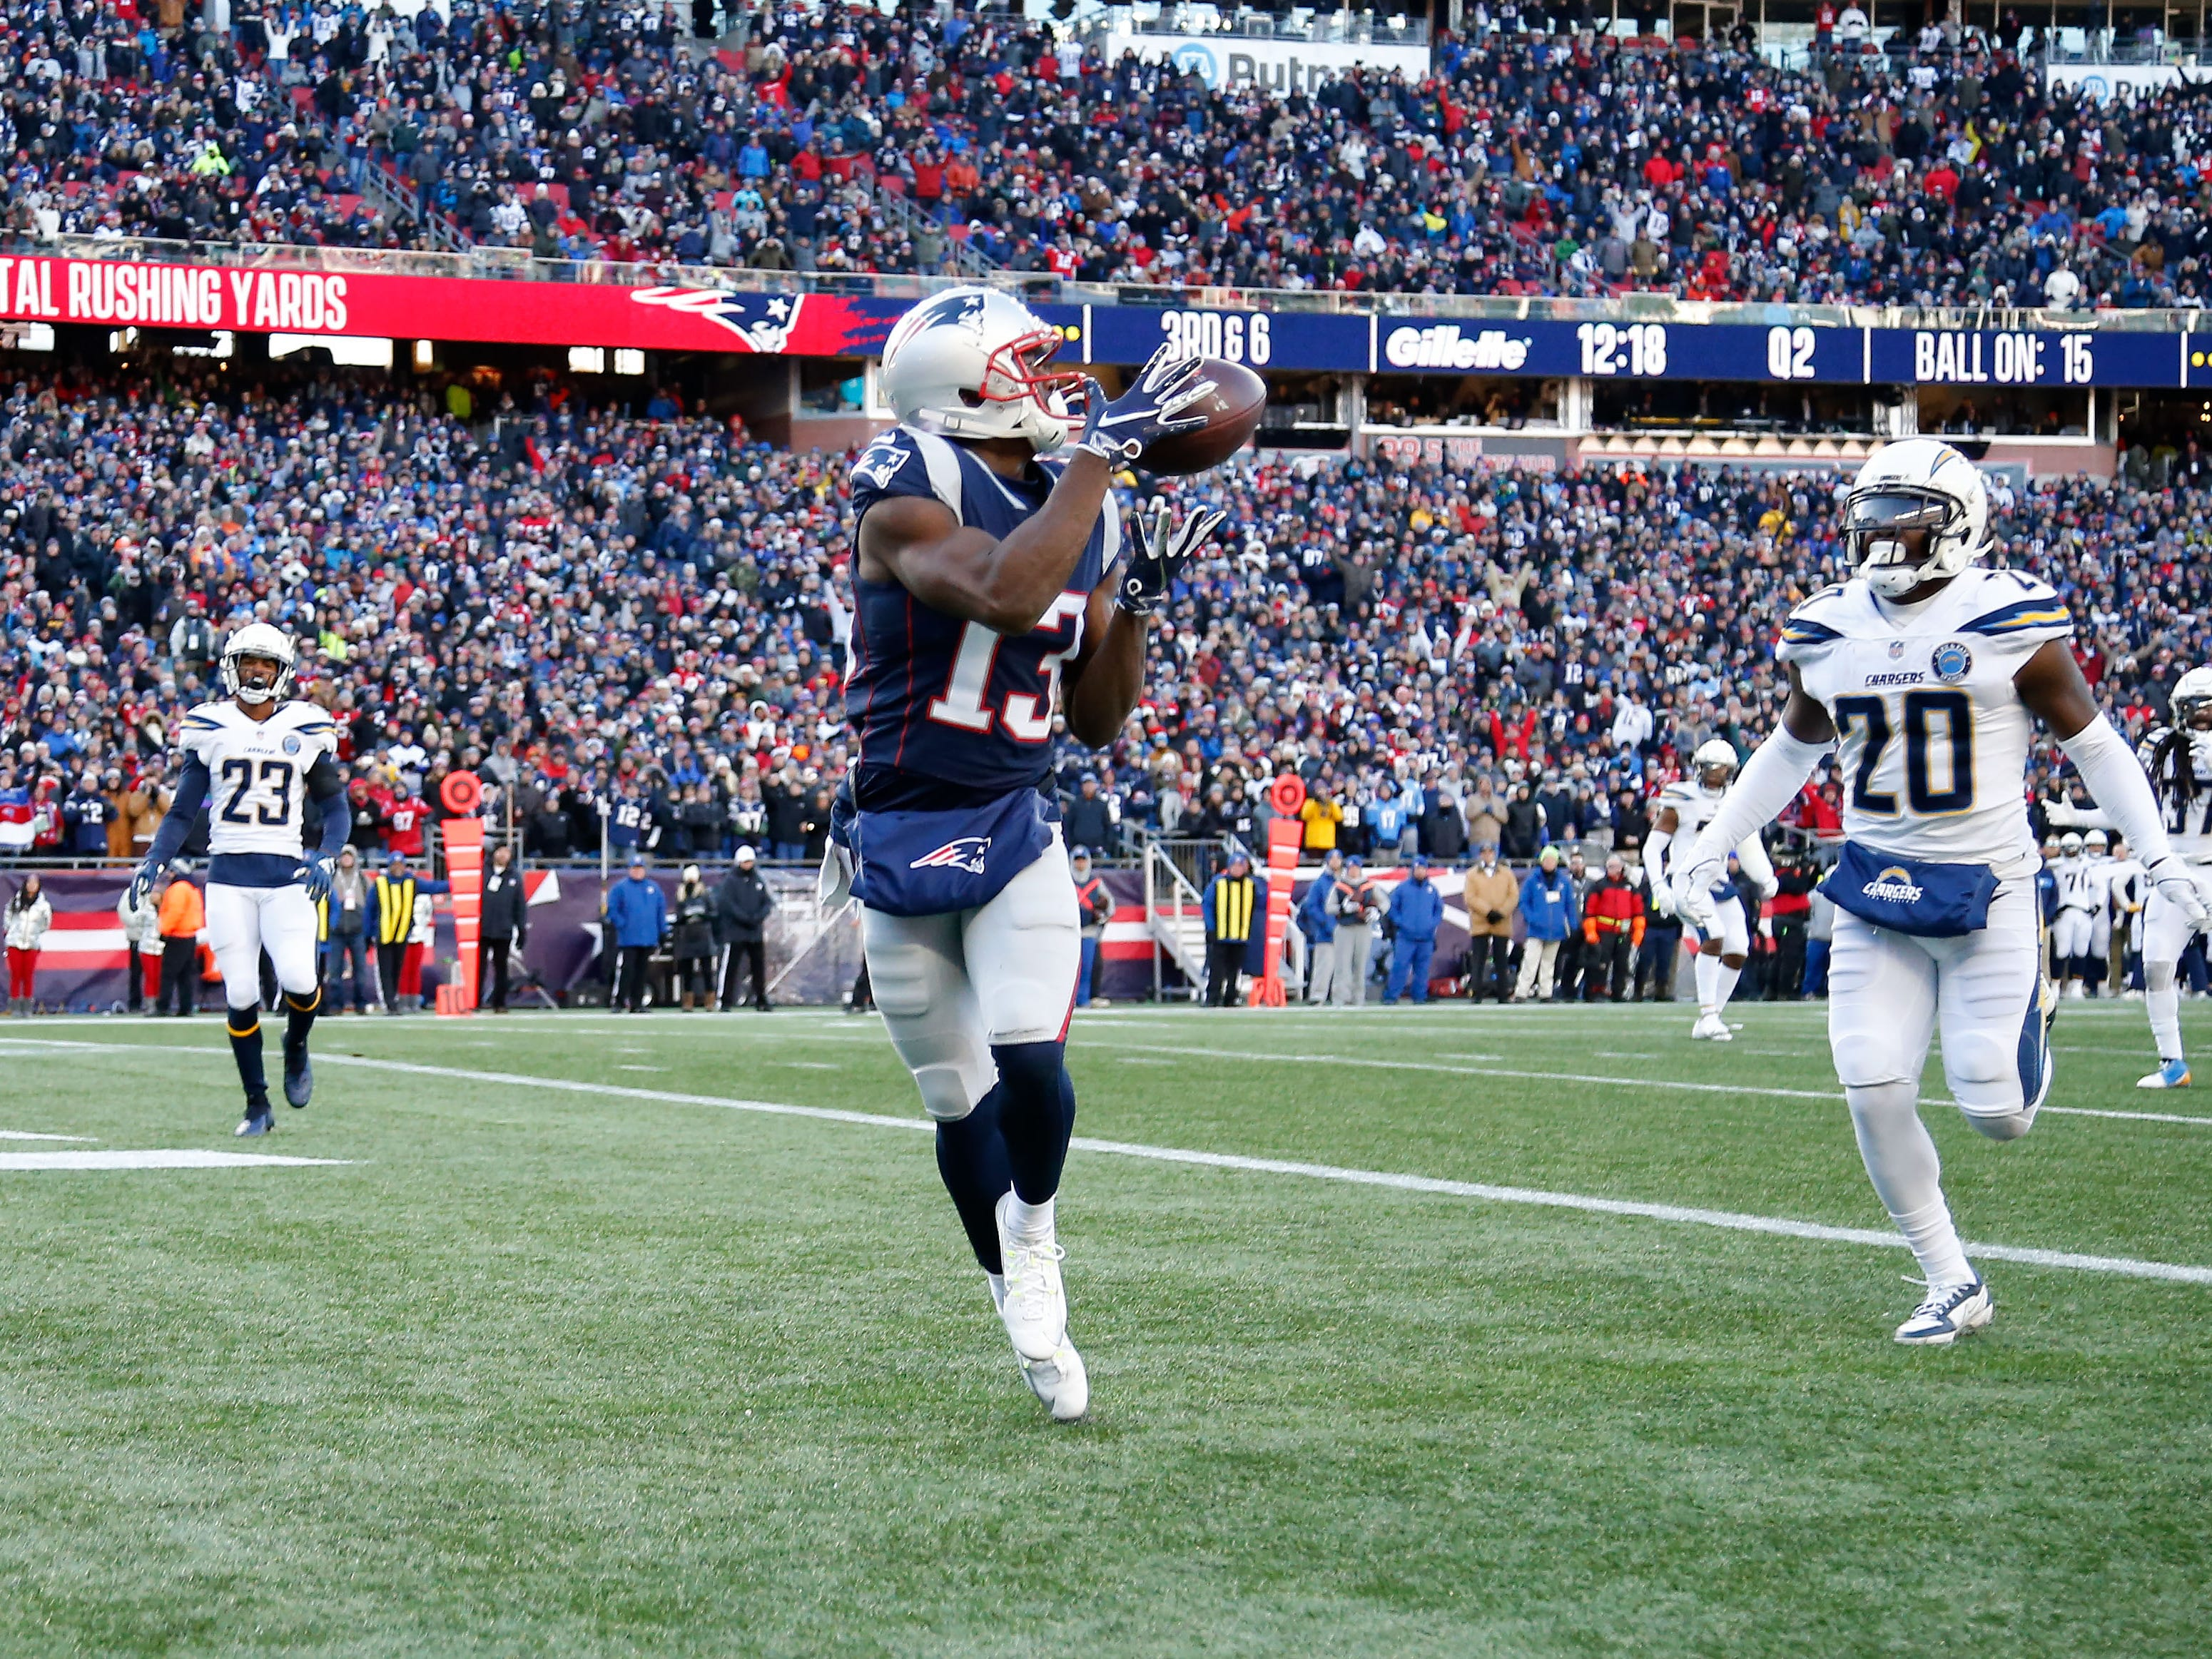 New England Patriots wide receiver Phillip Dorsett (13) catches a pass for a touchdown in front of Los Angeles Chargers defensive back Desmond King (20) during the second quarter in an AFC Divisional playoff football game at Gillette Stadium.